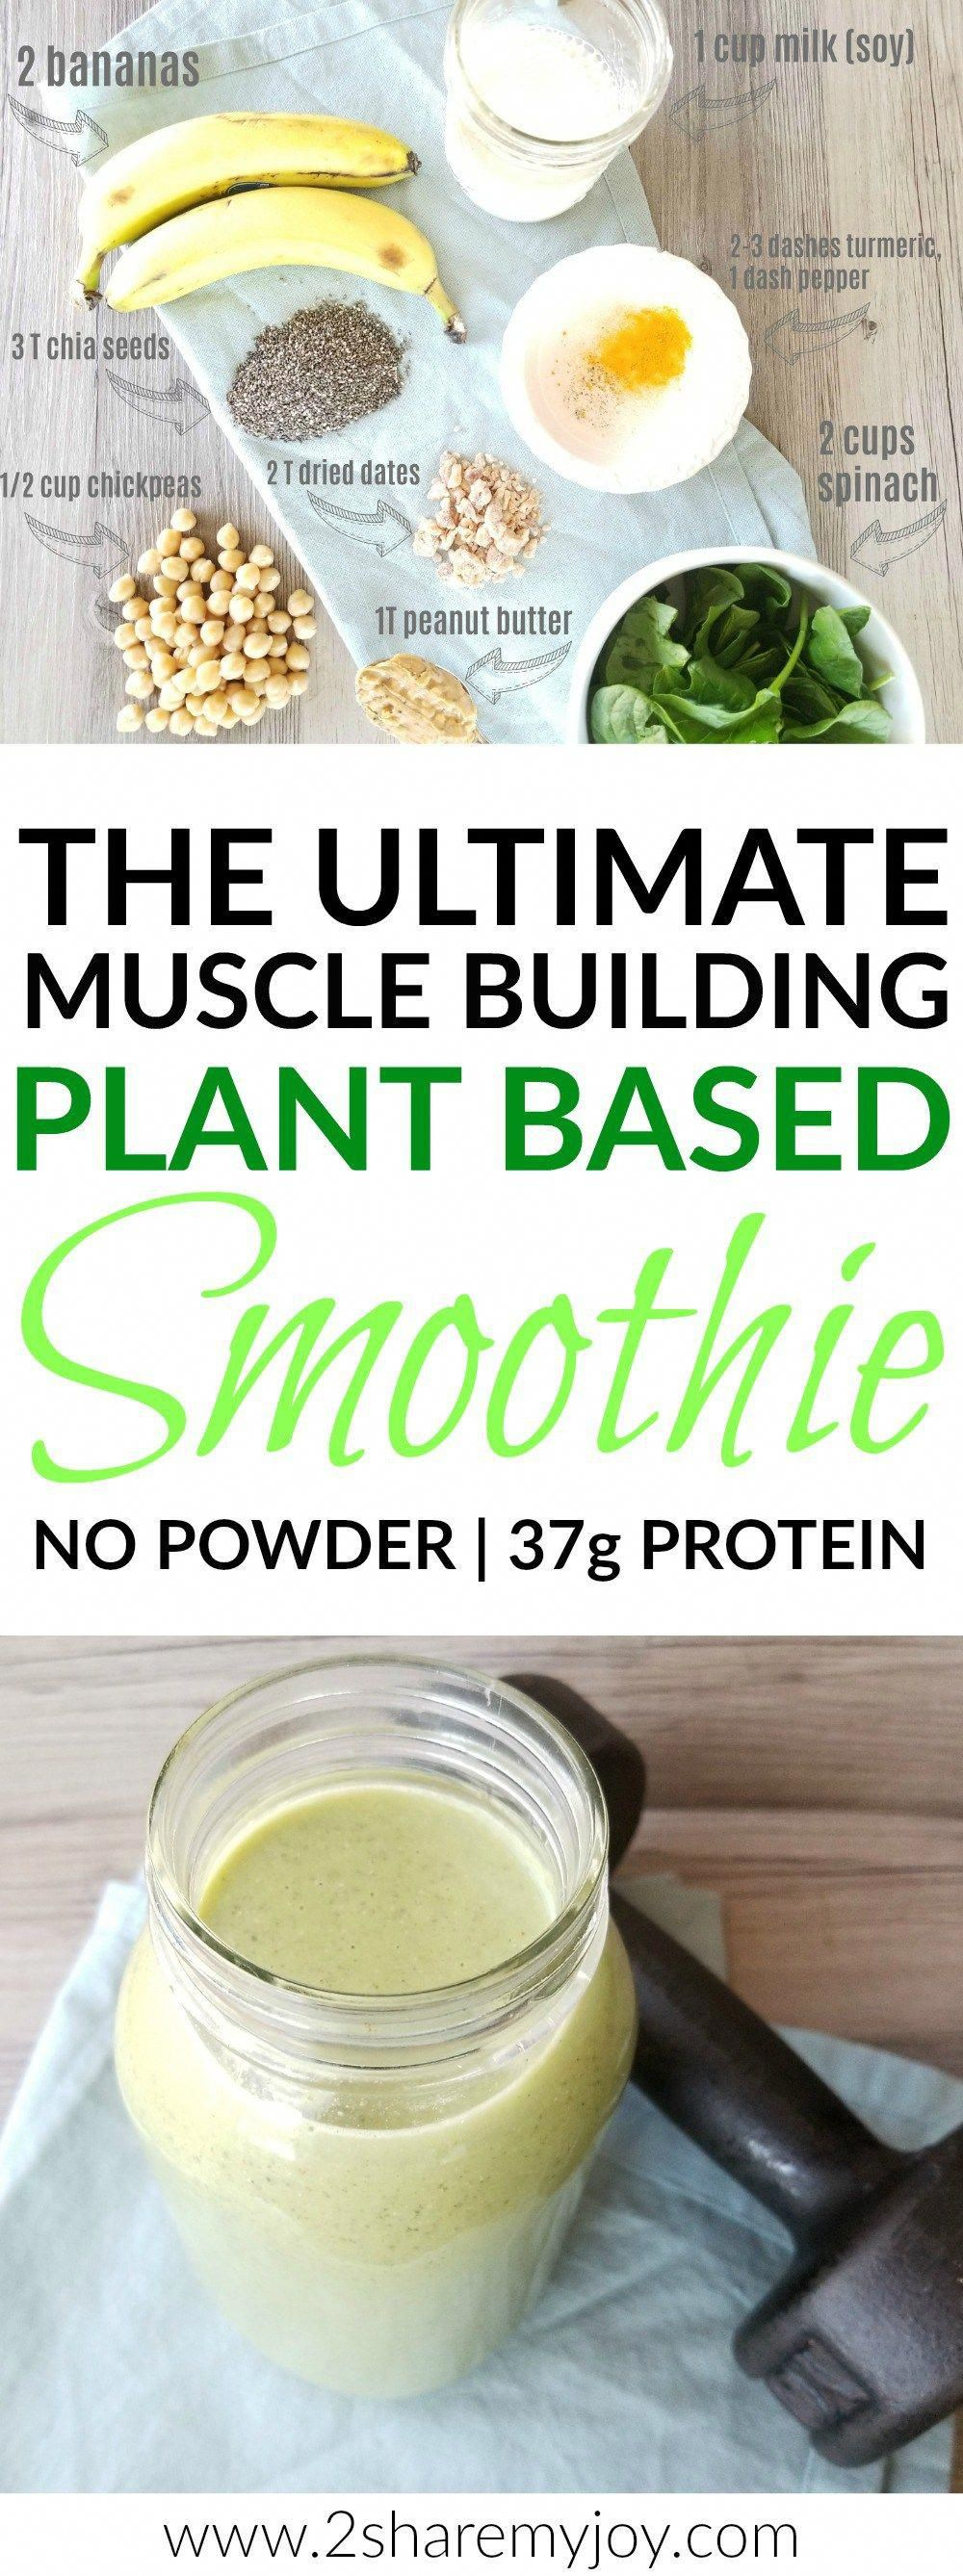 The Ultimate Muscle Building Vegan Smoothie for mega gains contains 950 calories, 37g proteins, 34 g fiber, and lots of vitamins and minerals. For this plant based protein green smoothie you don't need any powder. I like to drink this clean eating whole food smoothie in the mornings as a protein breakfast shake, or after workout. It is also gluten free and works wonders for muscle gain.  #vegansmoothie